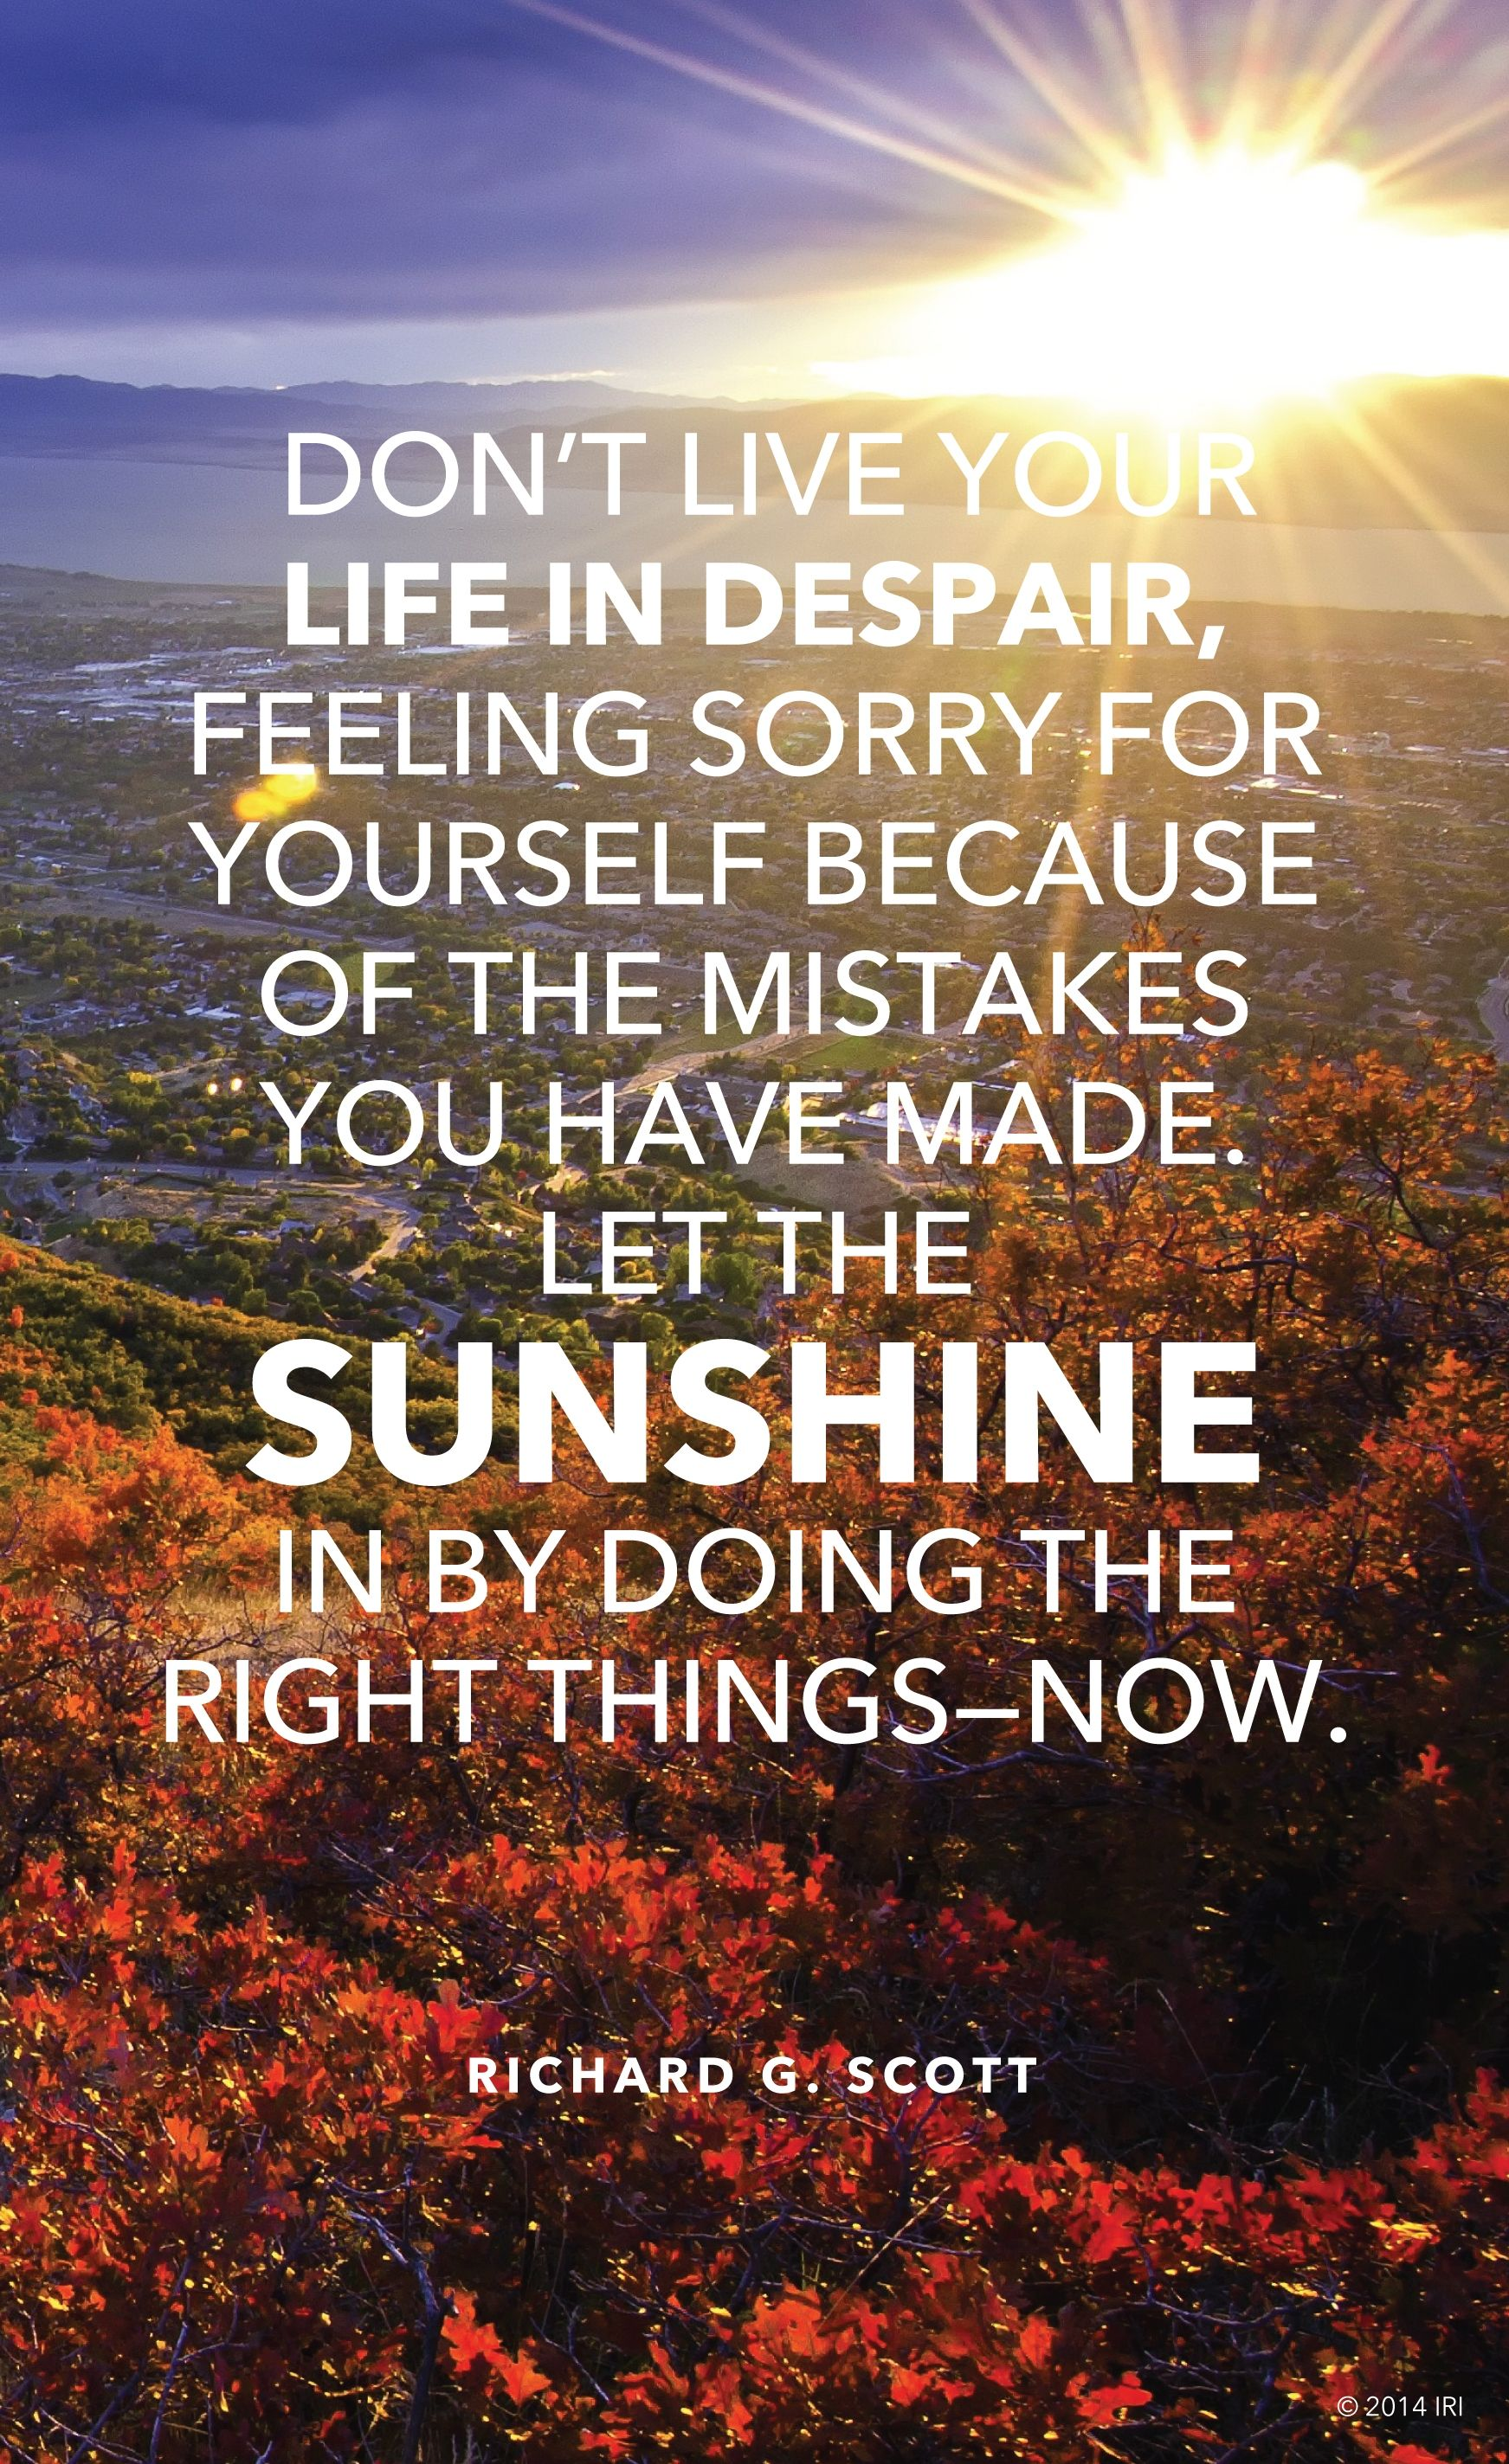 """An image of the sun setting combined with a quote by Elder Richard G. Scott: """"Don't live your life in despair … because of the mistakes you have made."""""""